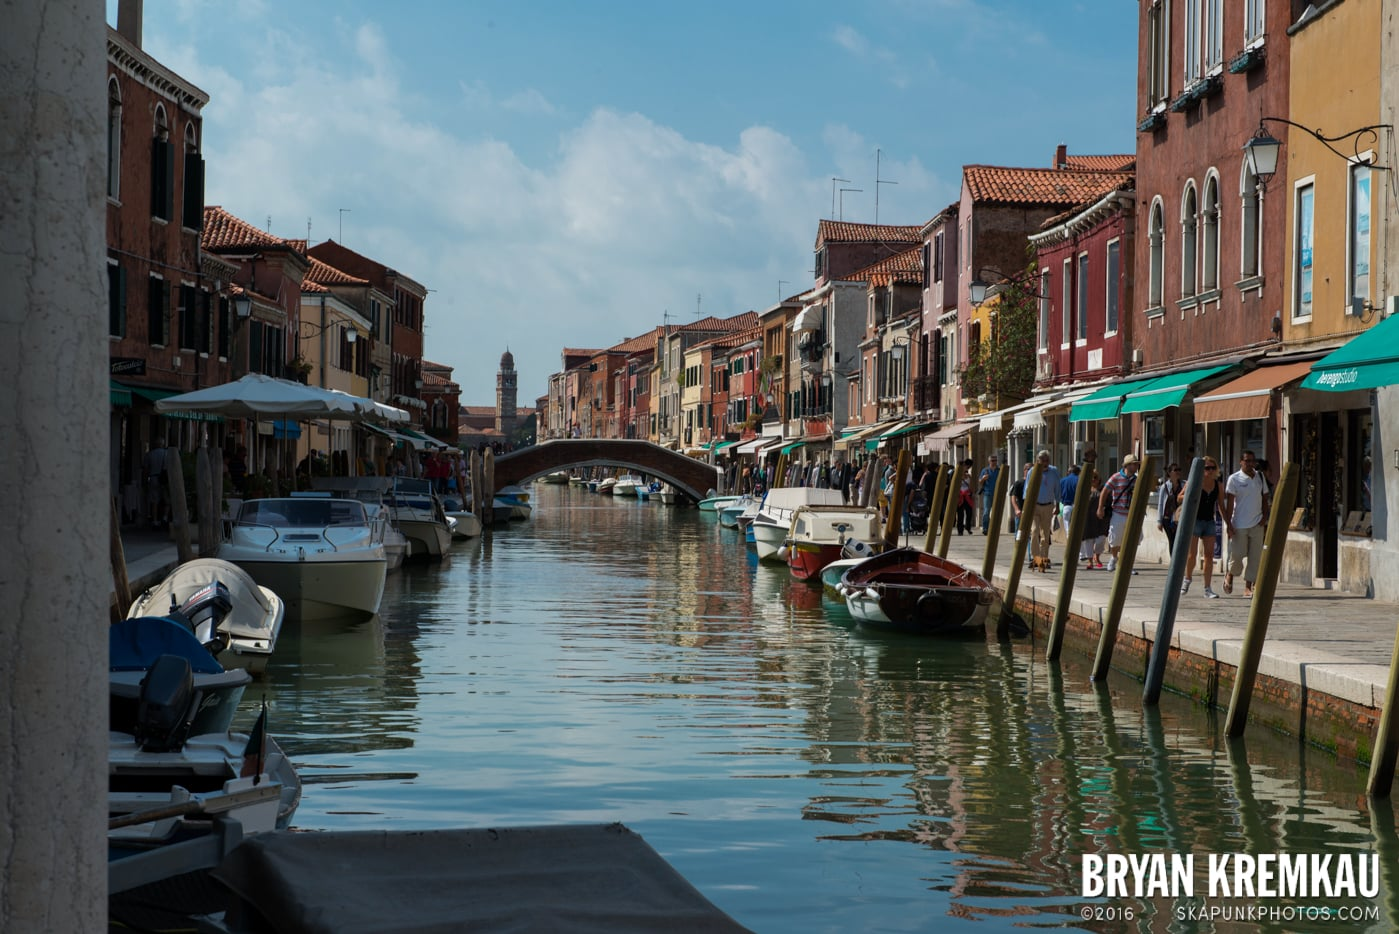 Italy Vacation - Day 6: Murano, Burano, Venice - 9.14.13 (74)